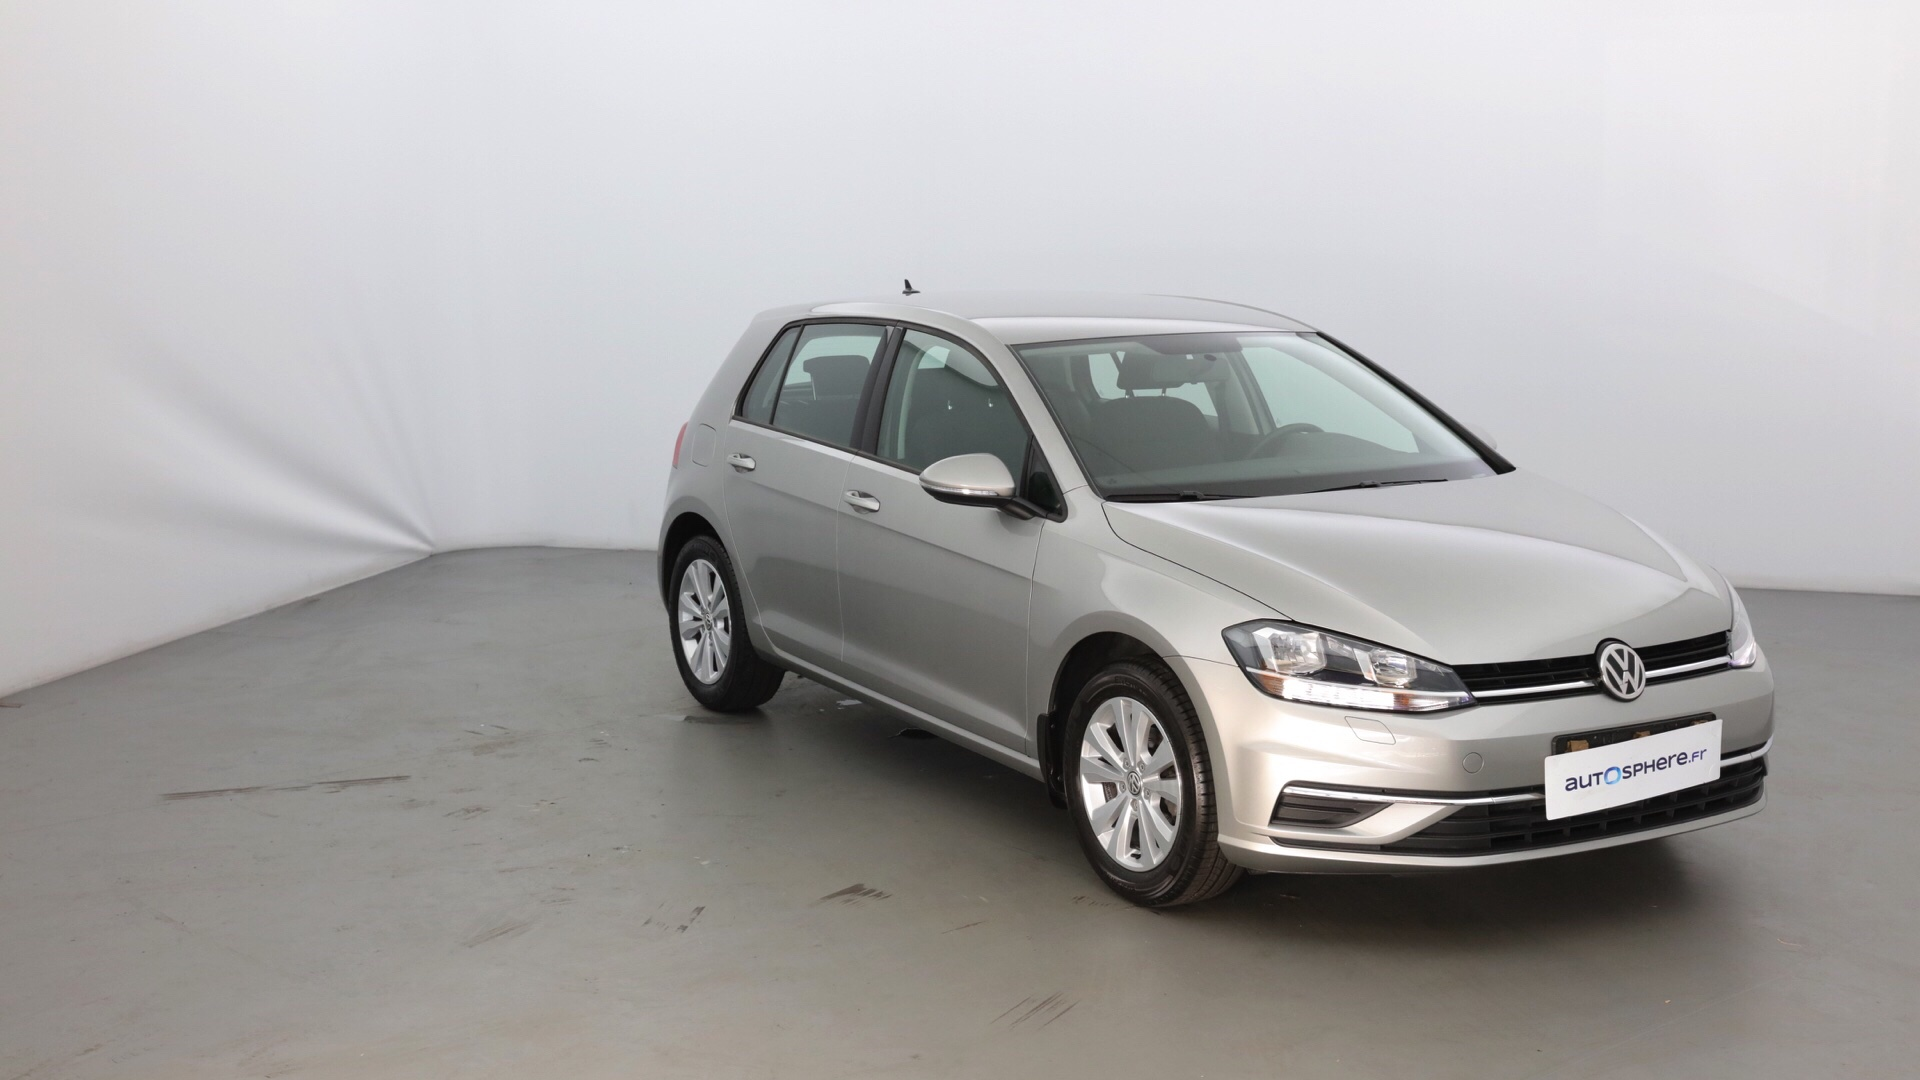 VOLKSWAGEN GOLF 1.0 TSI 110CH BLUEMOTION TECHNOLOGY TRENDLINE 5P - Miniature 3